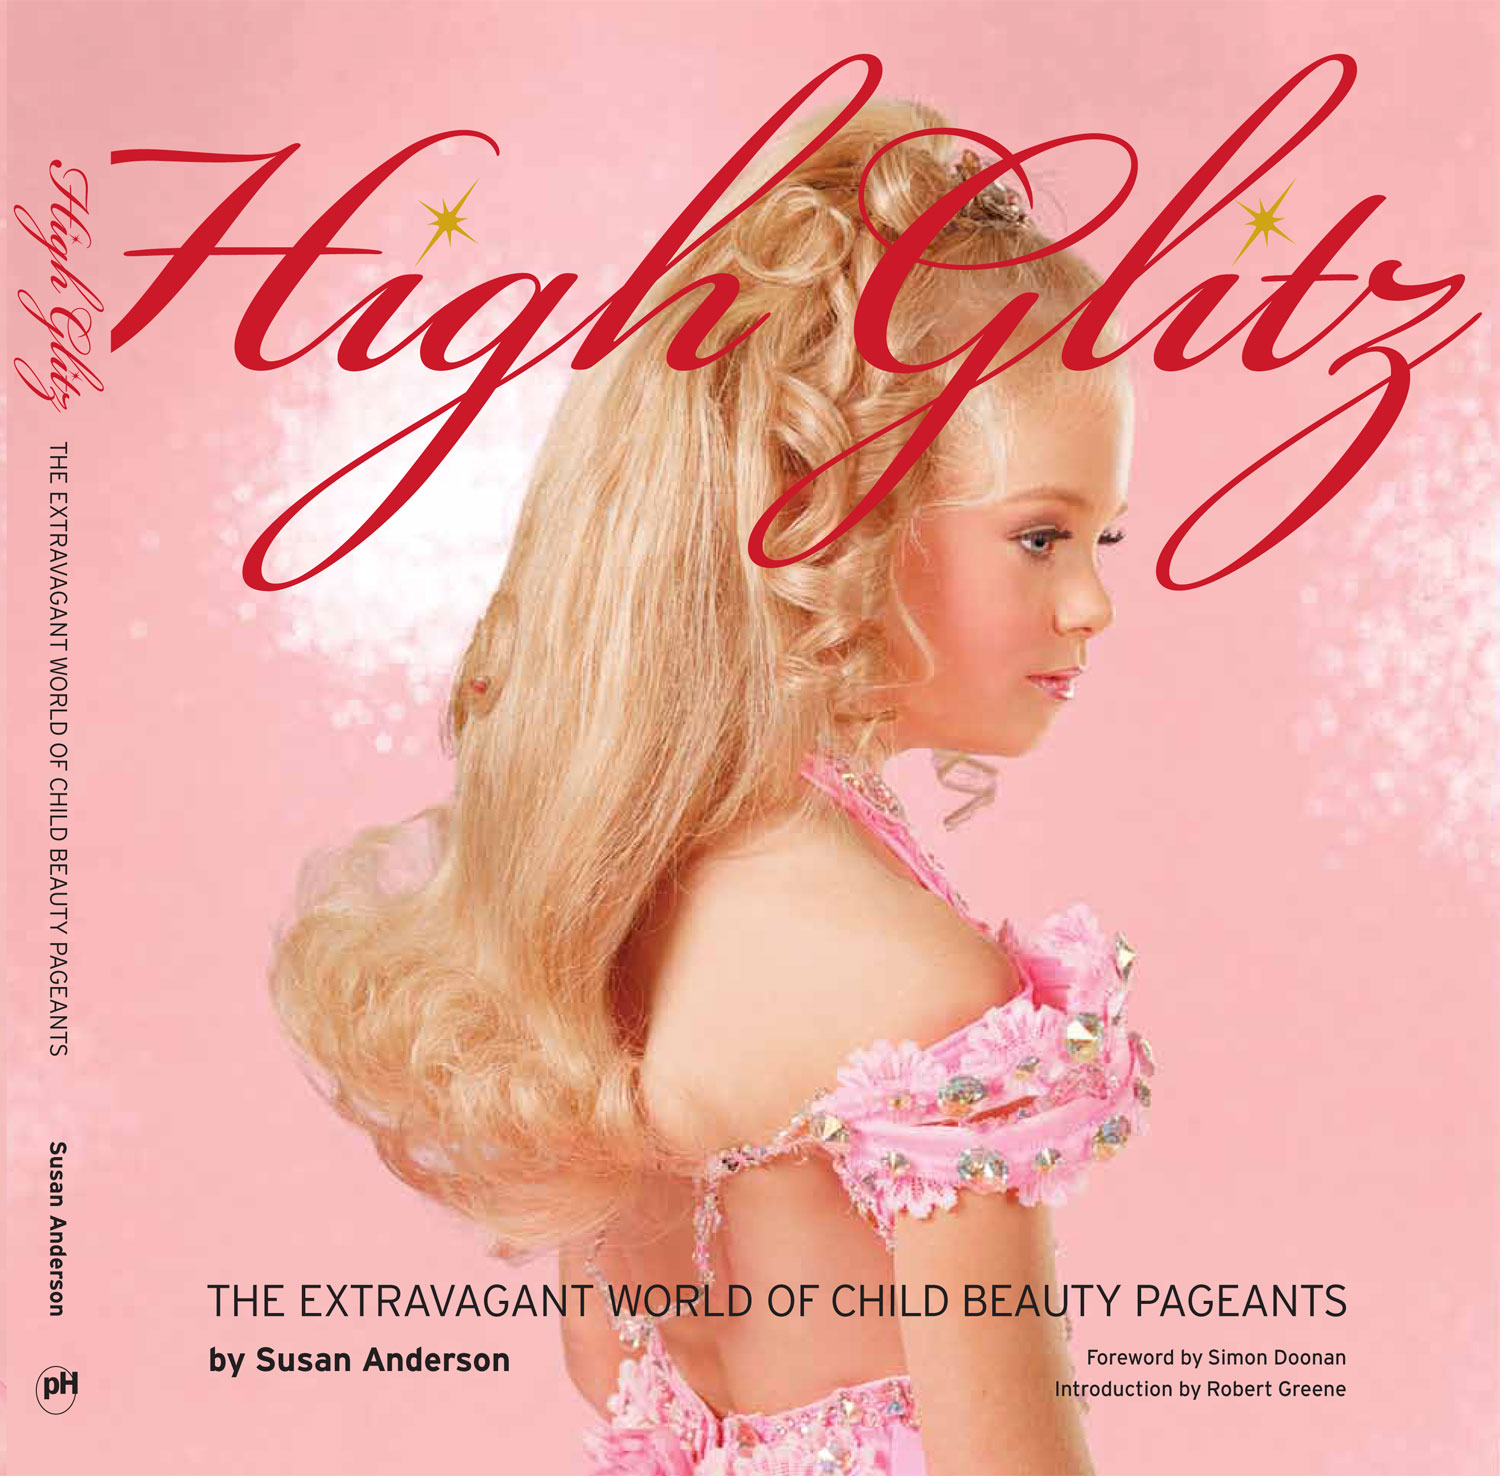 highglitz-coveronly.jpg